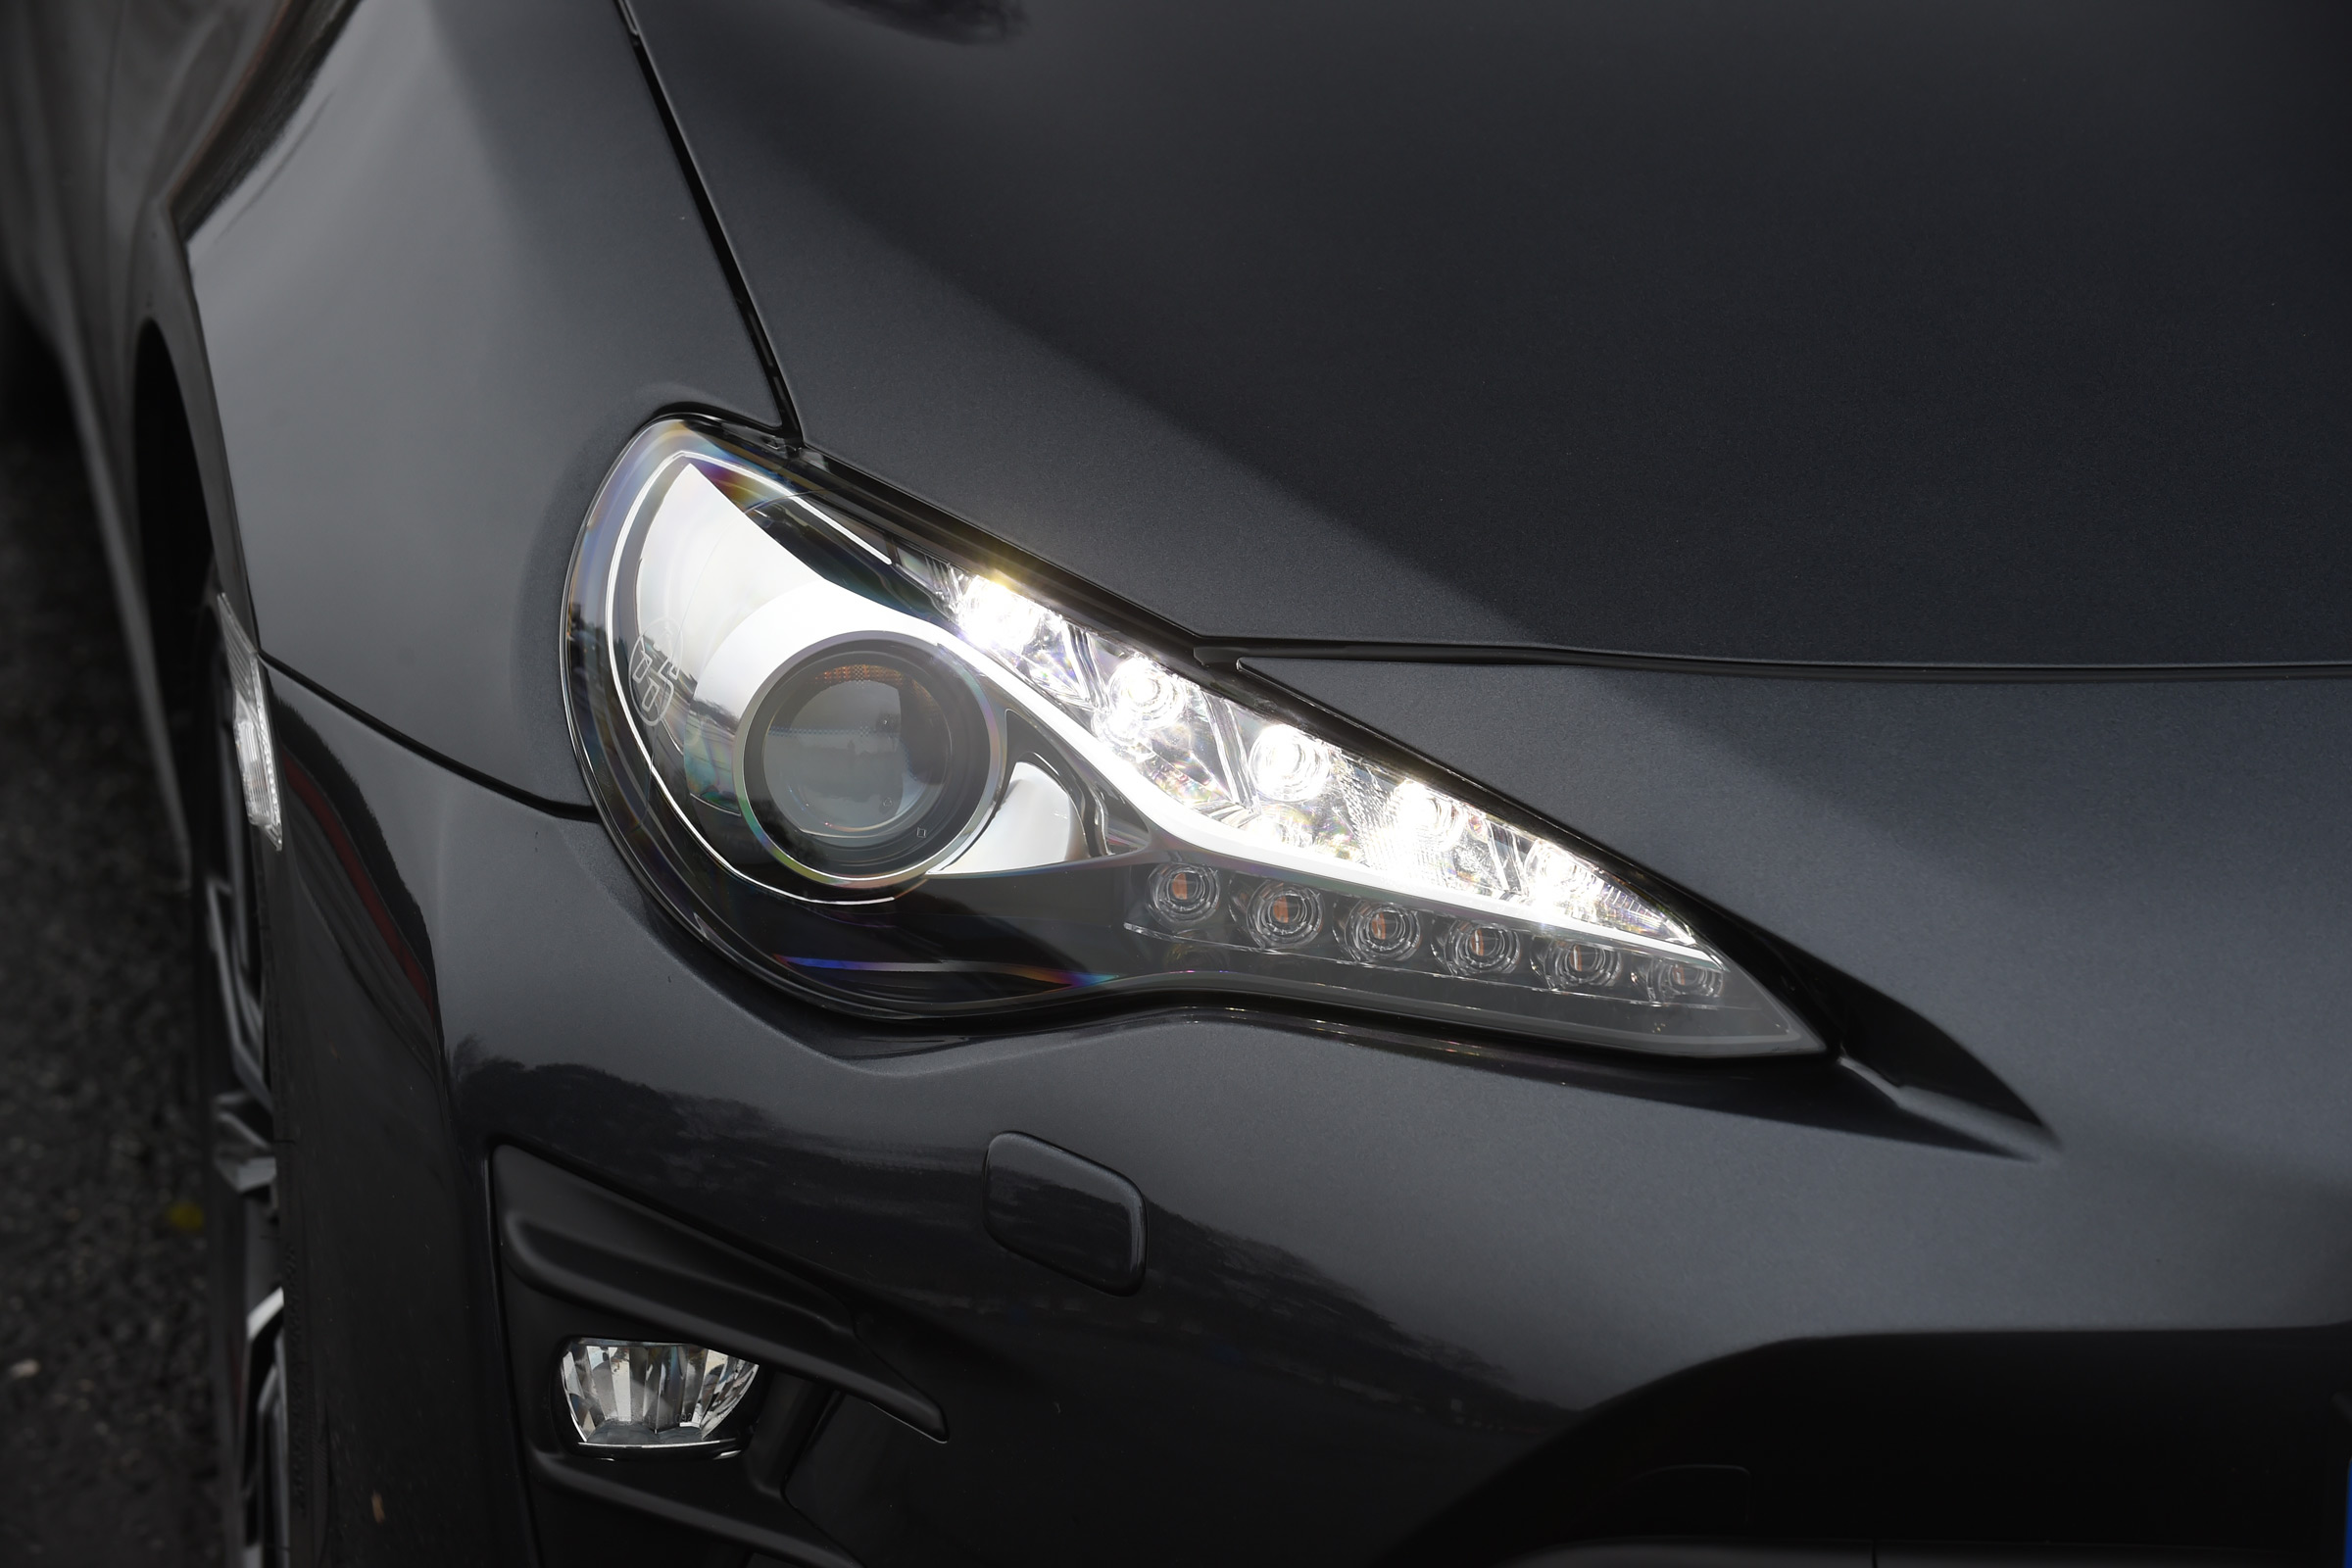 2017 Toyota GT86 Black Exterior View Headlight (Photo 10 of 13)